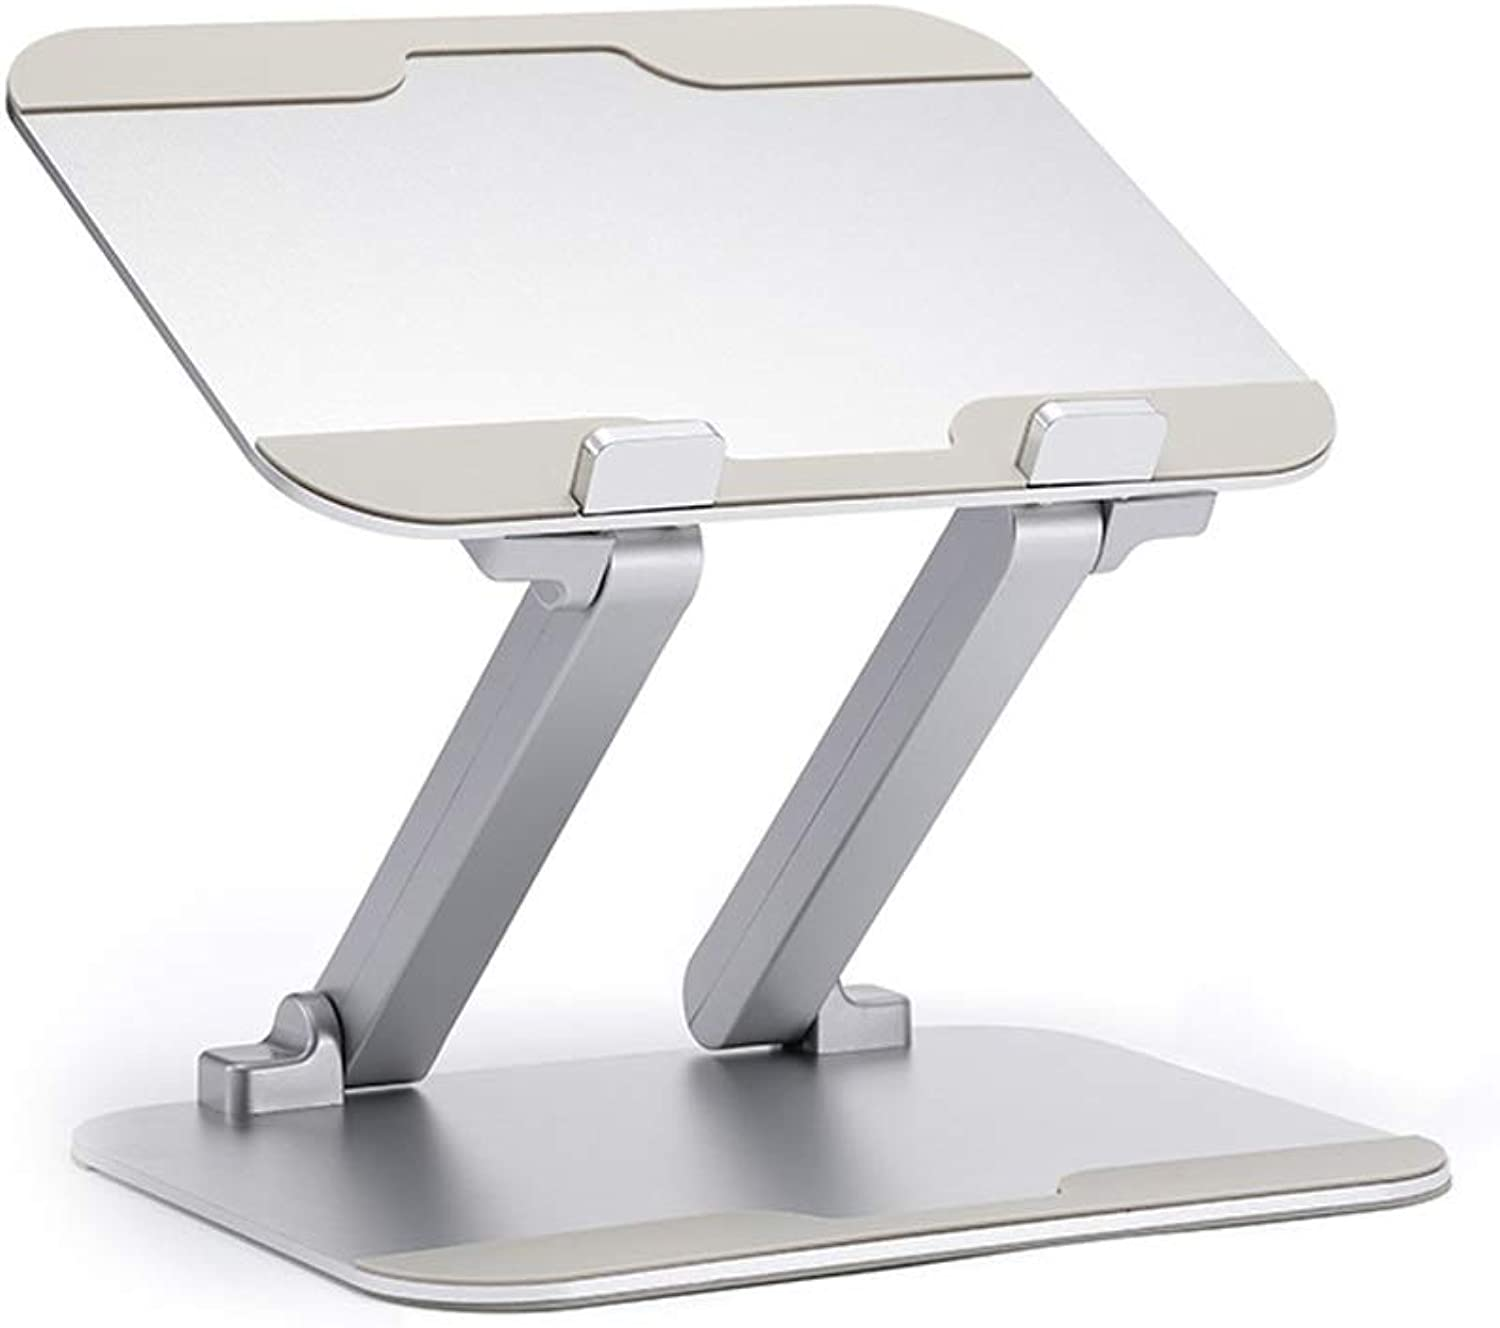 JSFQ Aluminum Folding Table Lightweight Plate, Computer Table Simple Lifting Bracket   27 × 21 × 30cm Folding Table